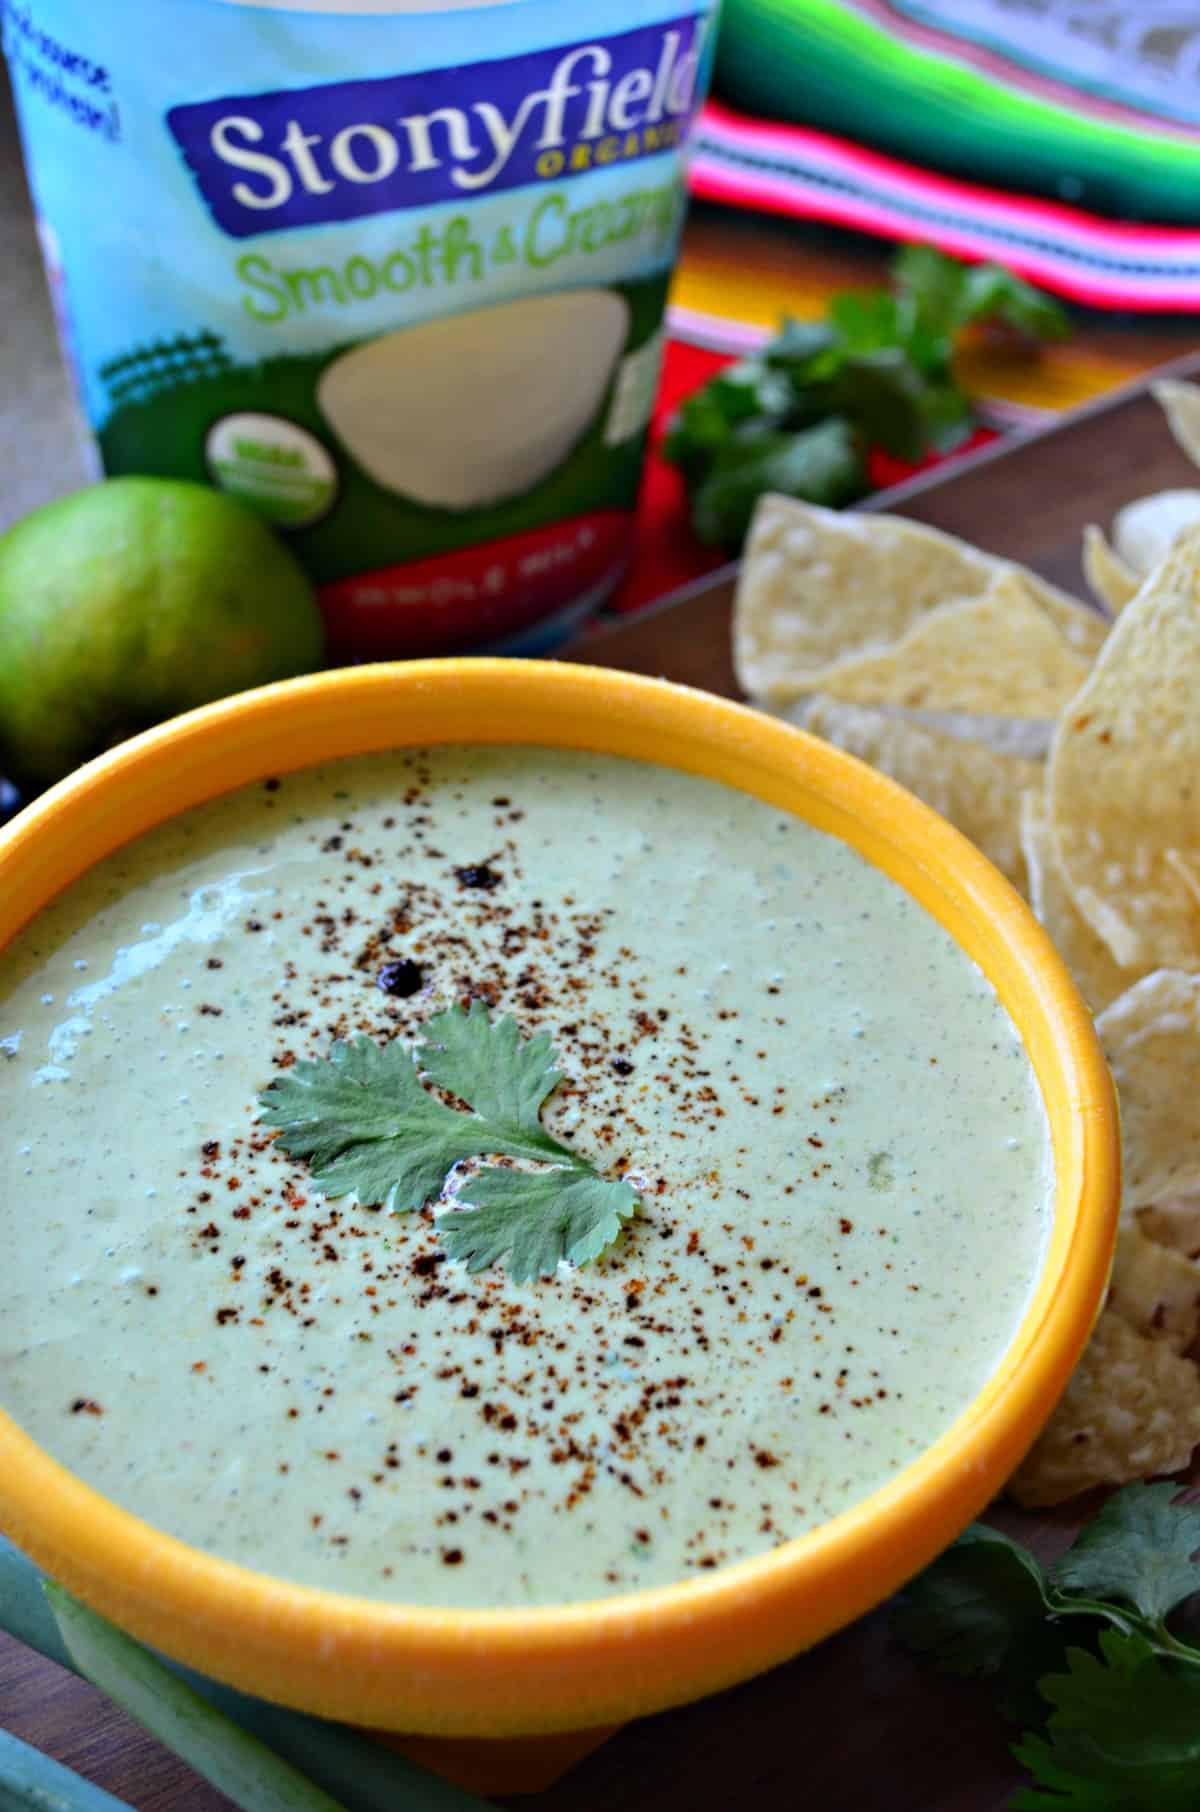 close up top view creamy green dip in yellow bowl topped with cilantro leaf next to corn tortilla chips and limes.